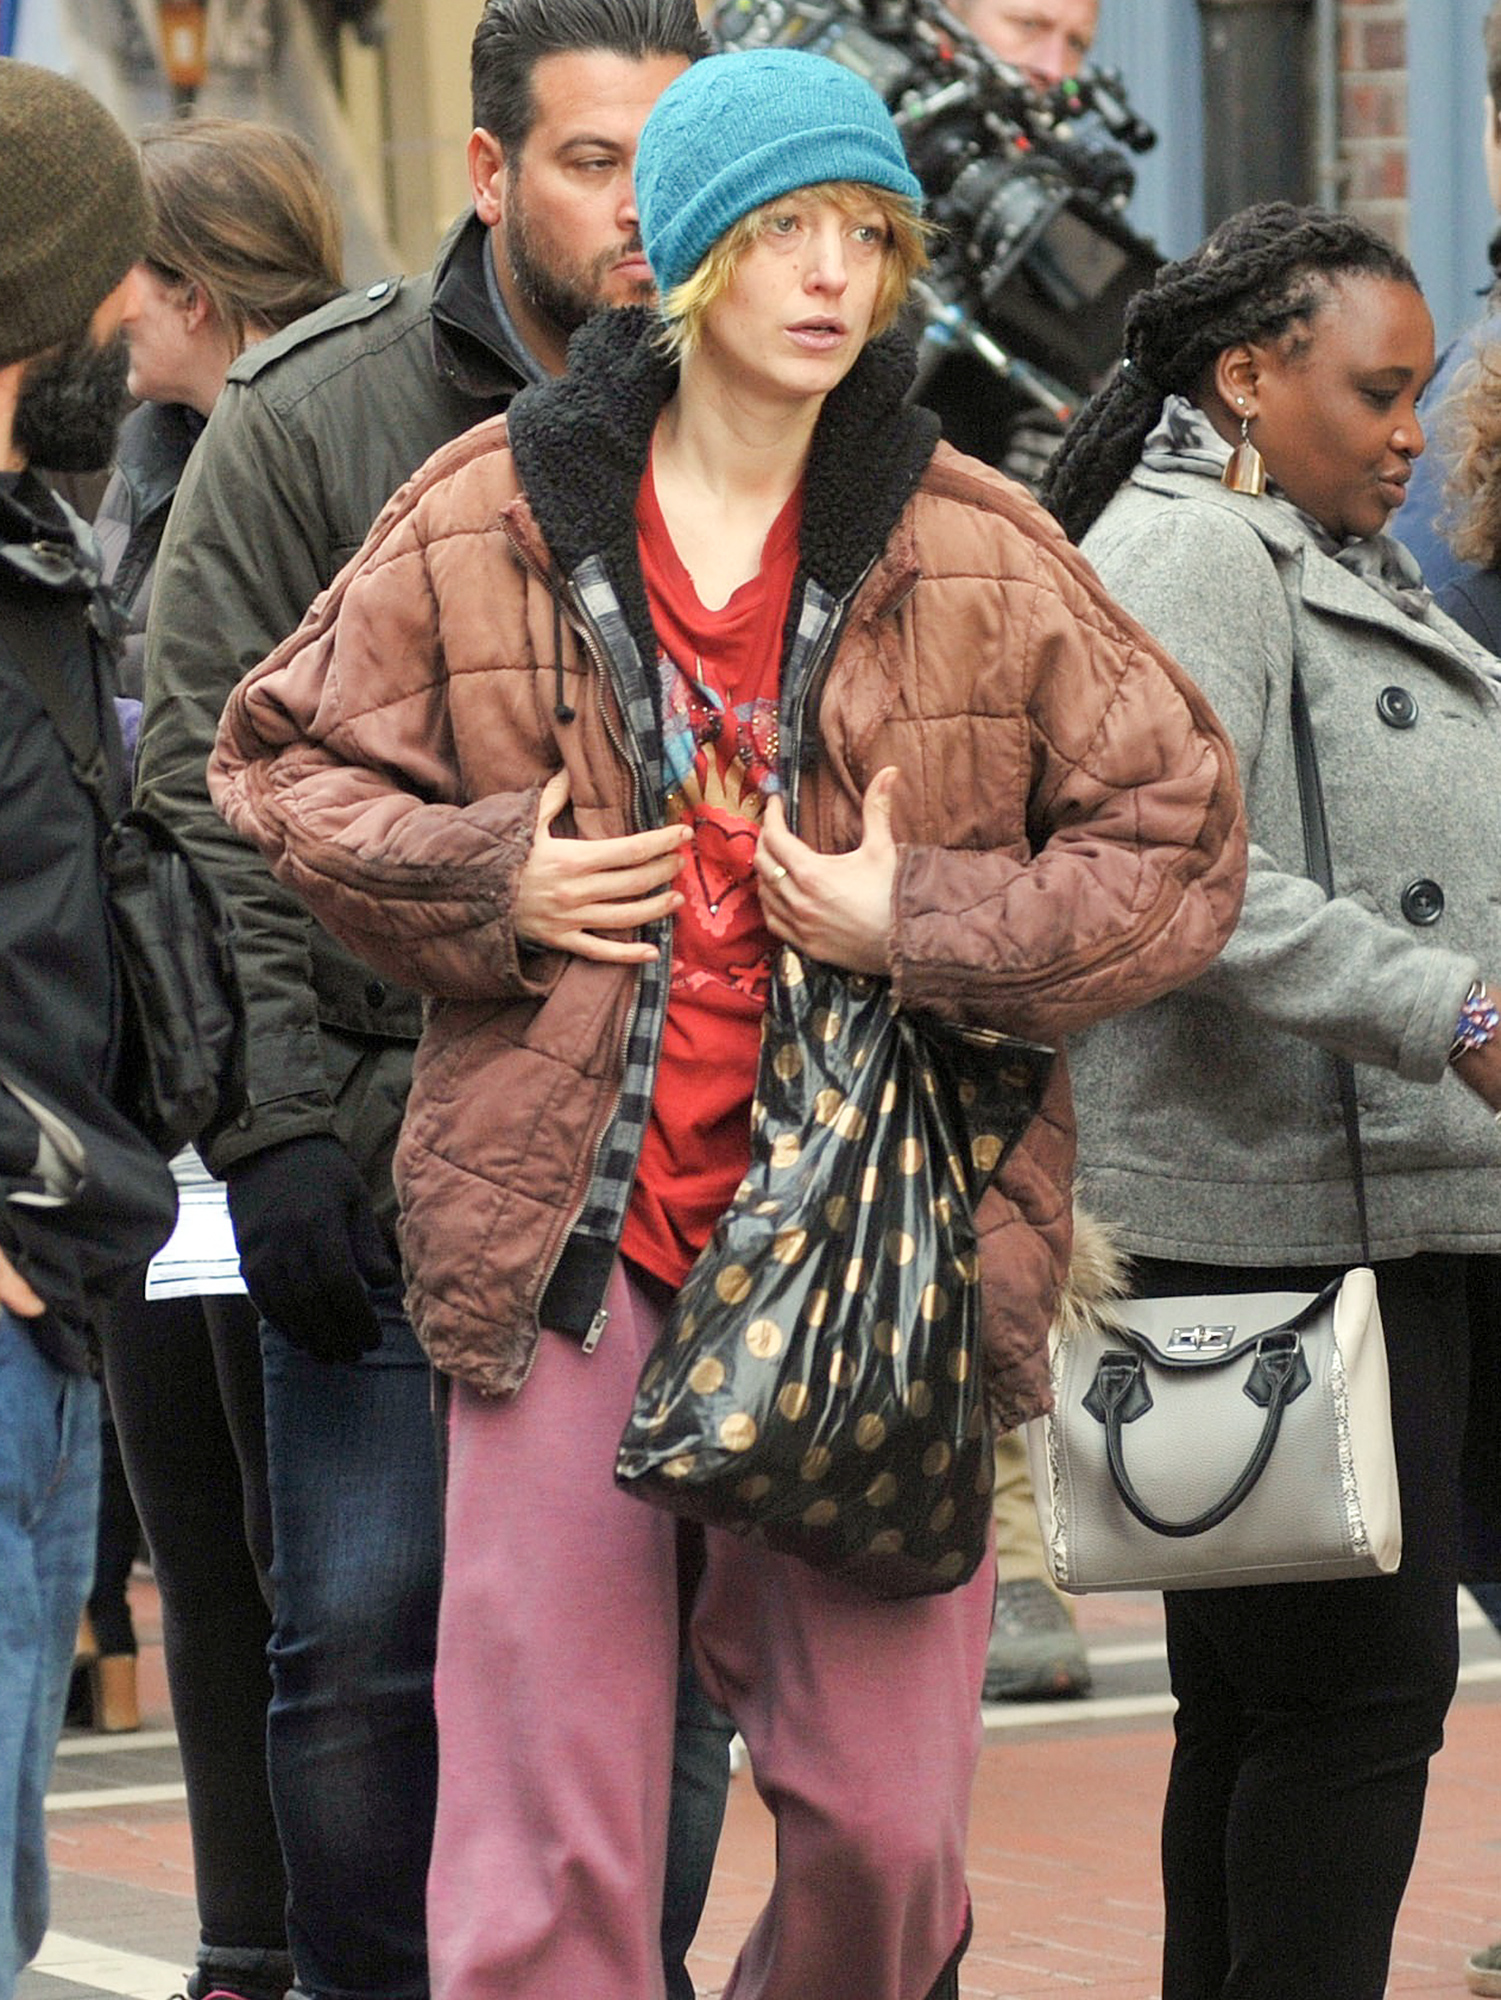 Hollywood Actress Blake Lively On Day Two Of Filming For New Movie The Rhythm Section In Dublin